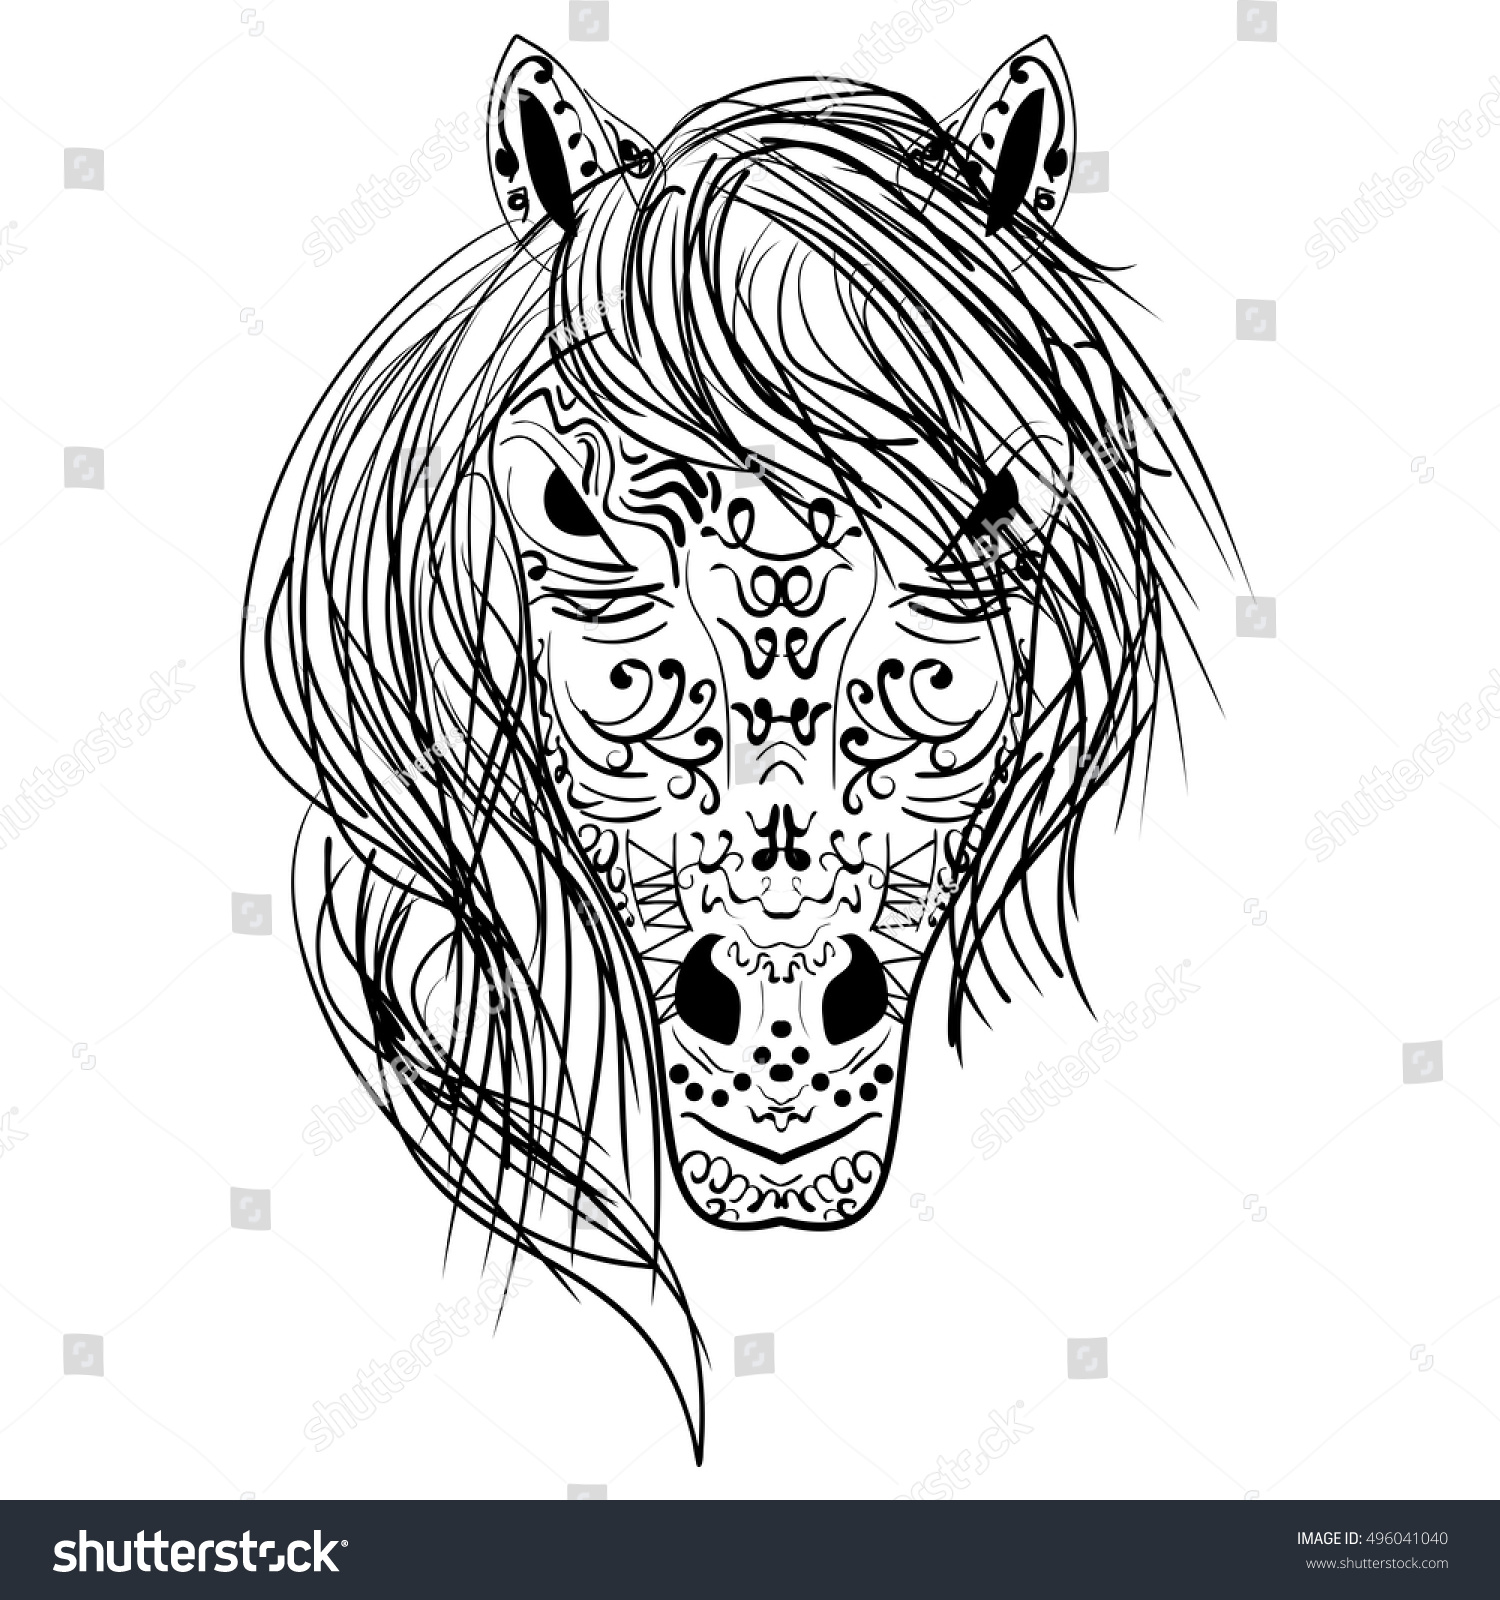 Head Horse Coloring Book Adults Vector Stock Vector Royalty Free